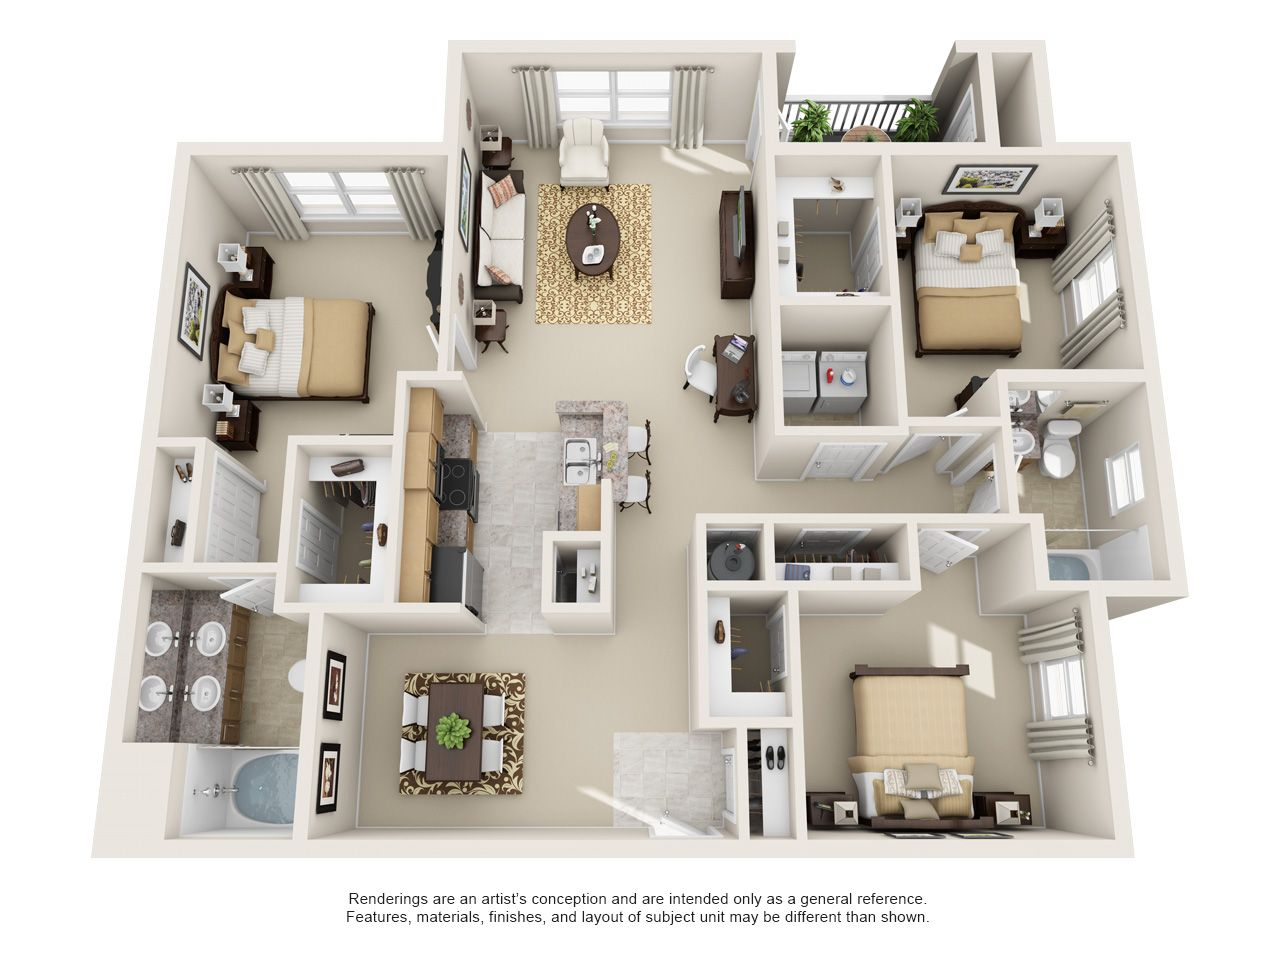 1 And 2 Bedroom Floor Plans Stoneridge Farms Apartments Tennessee Apartment Steadfast Smy 3d House Plans Studio Apartment Floor Plans Sims House Plans